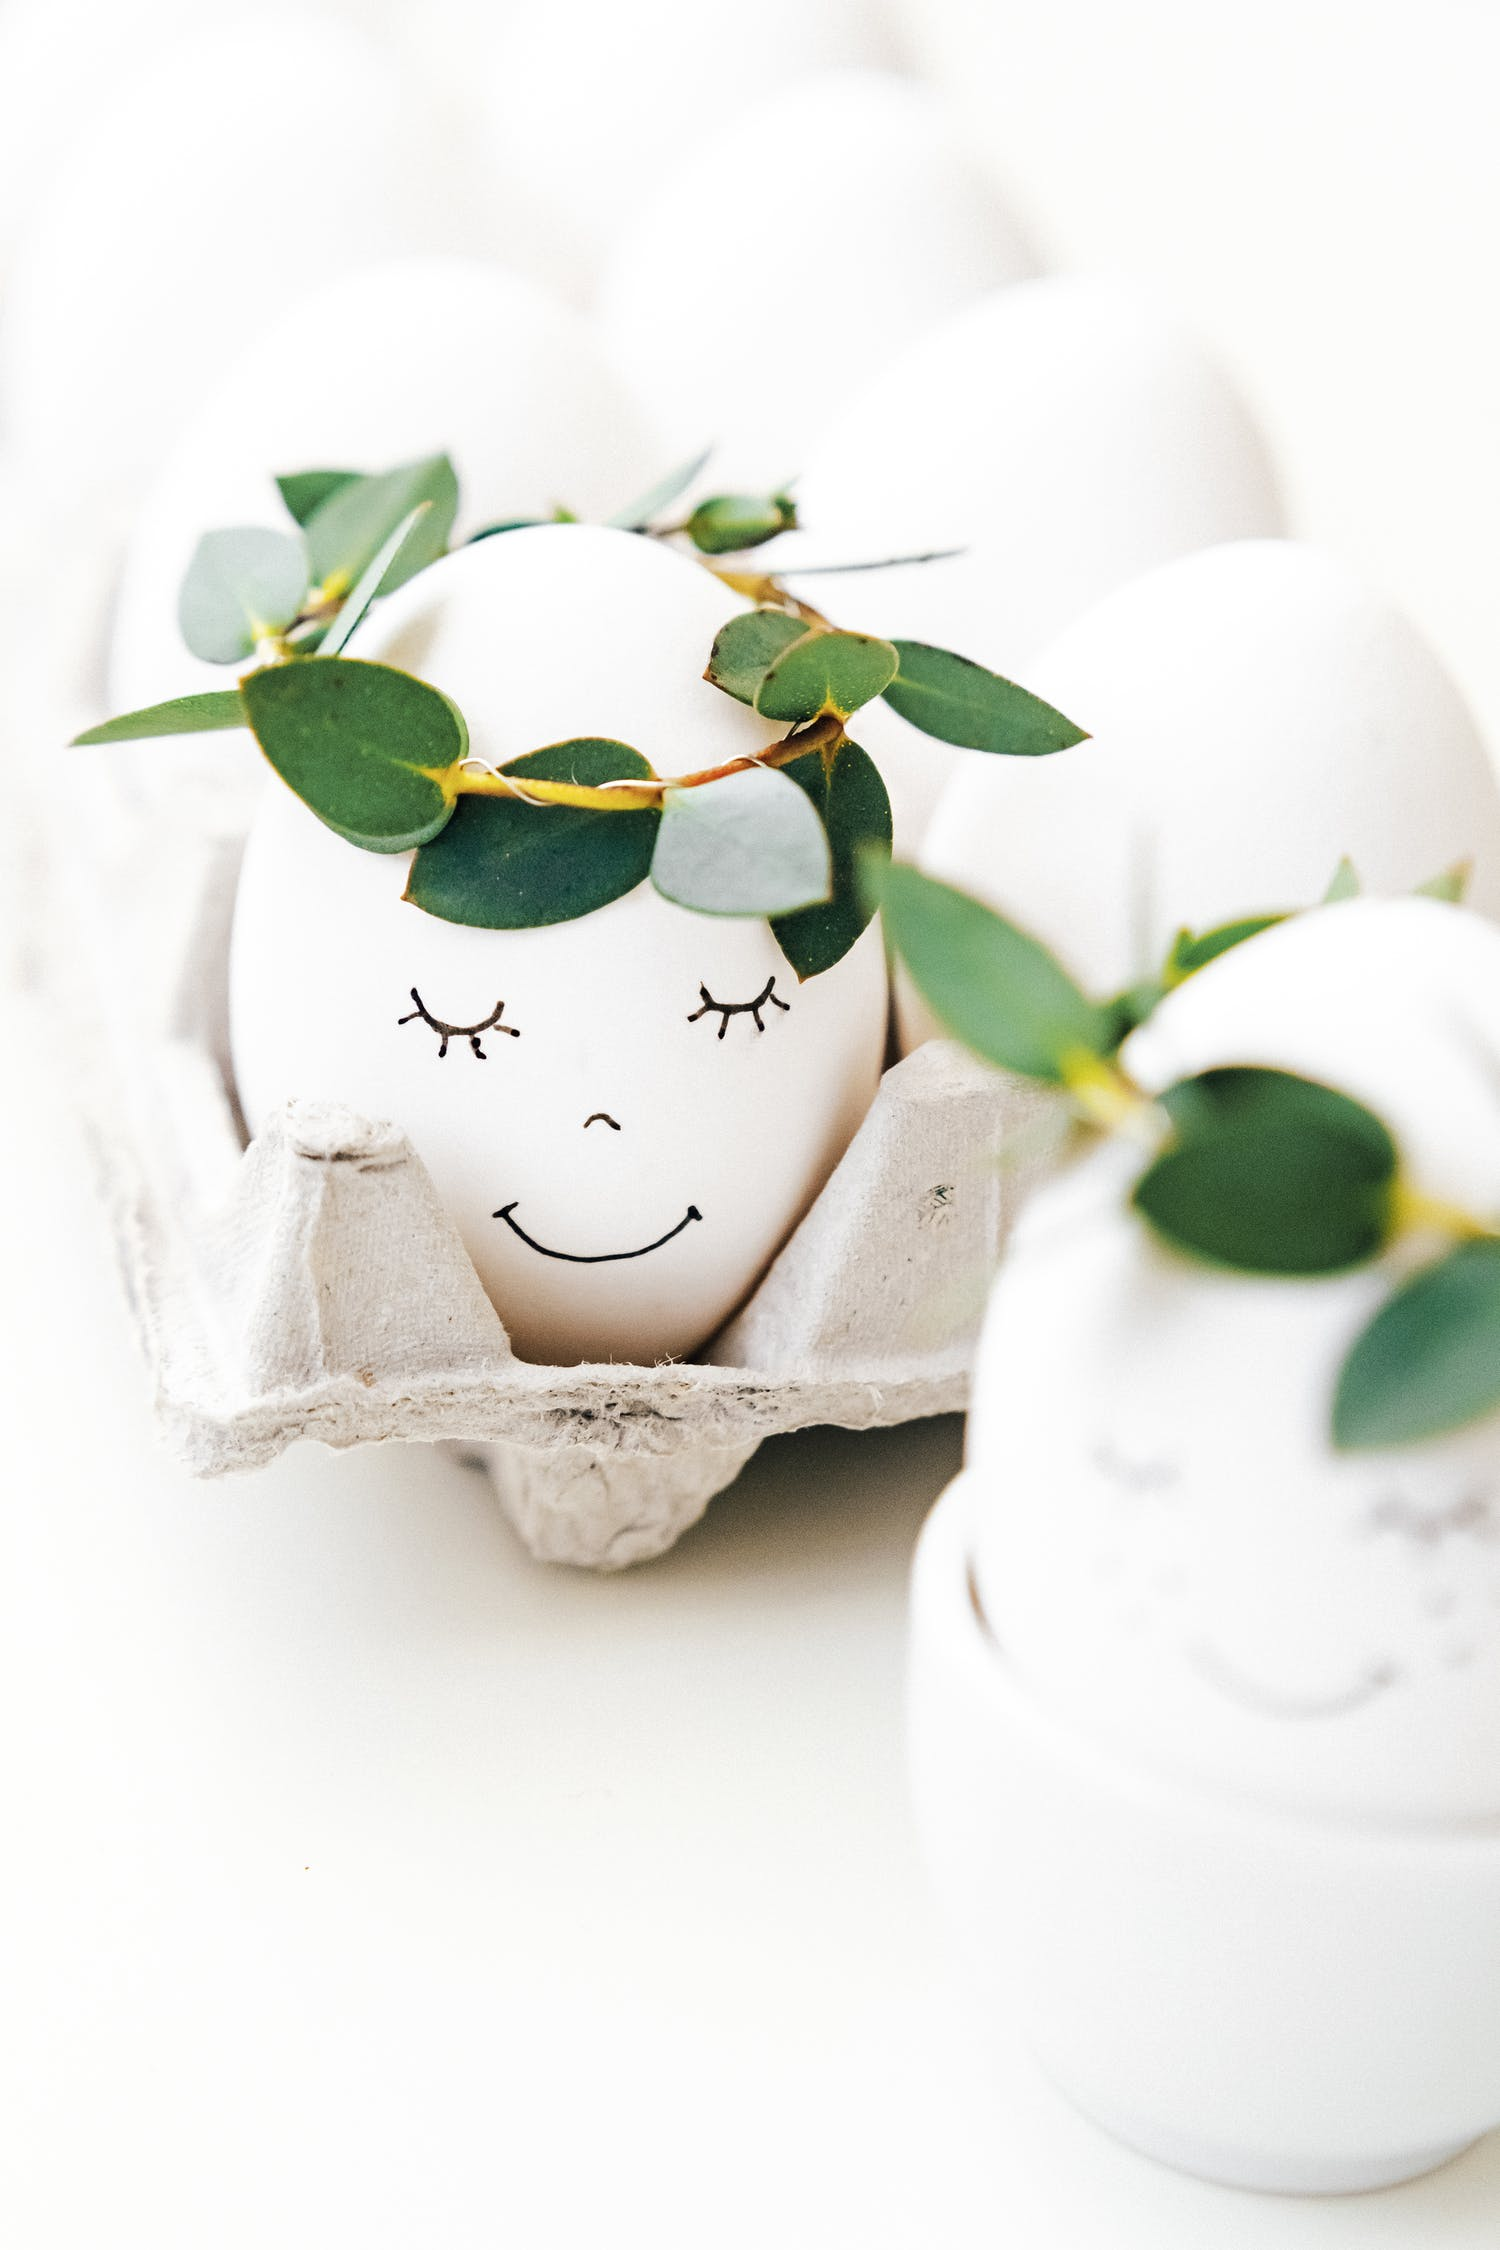 White Egg With Painted Face And Crown Of egLeaves